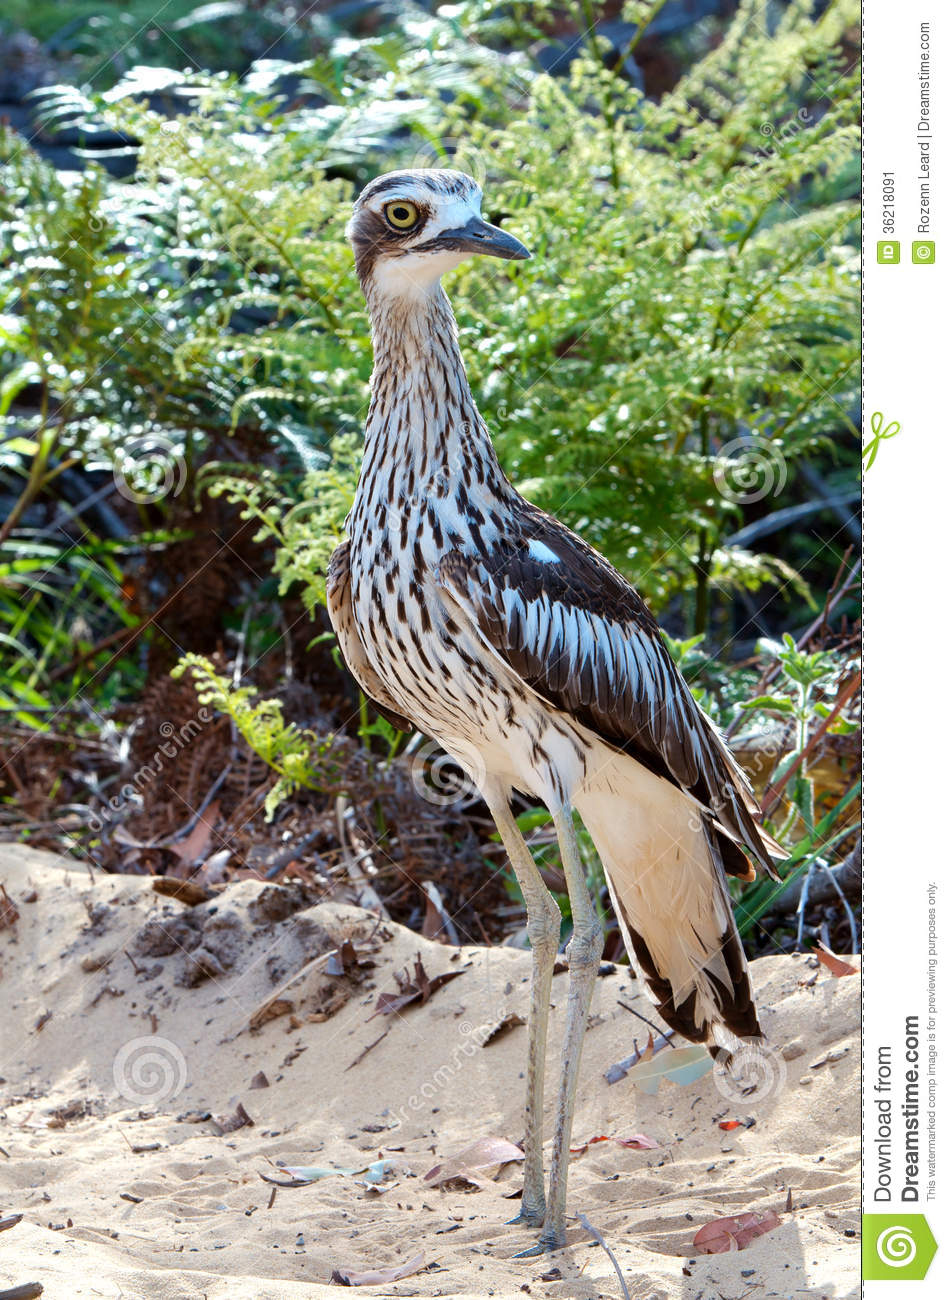 Bush Stone-curlew clipart #14, Download drawings